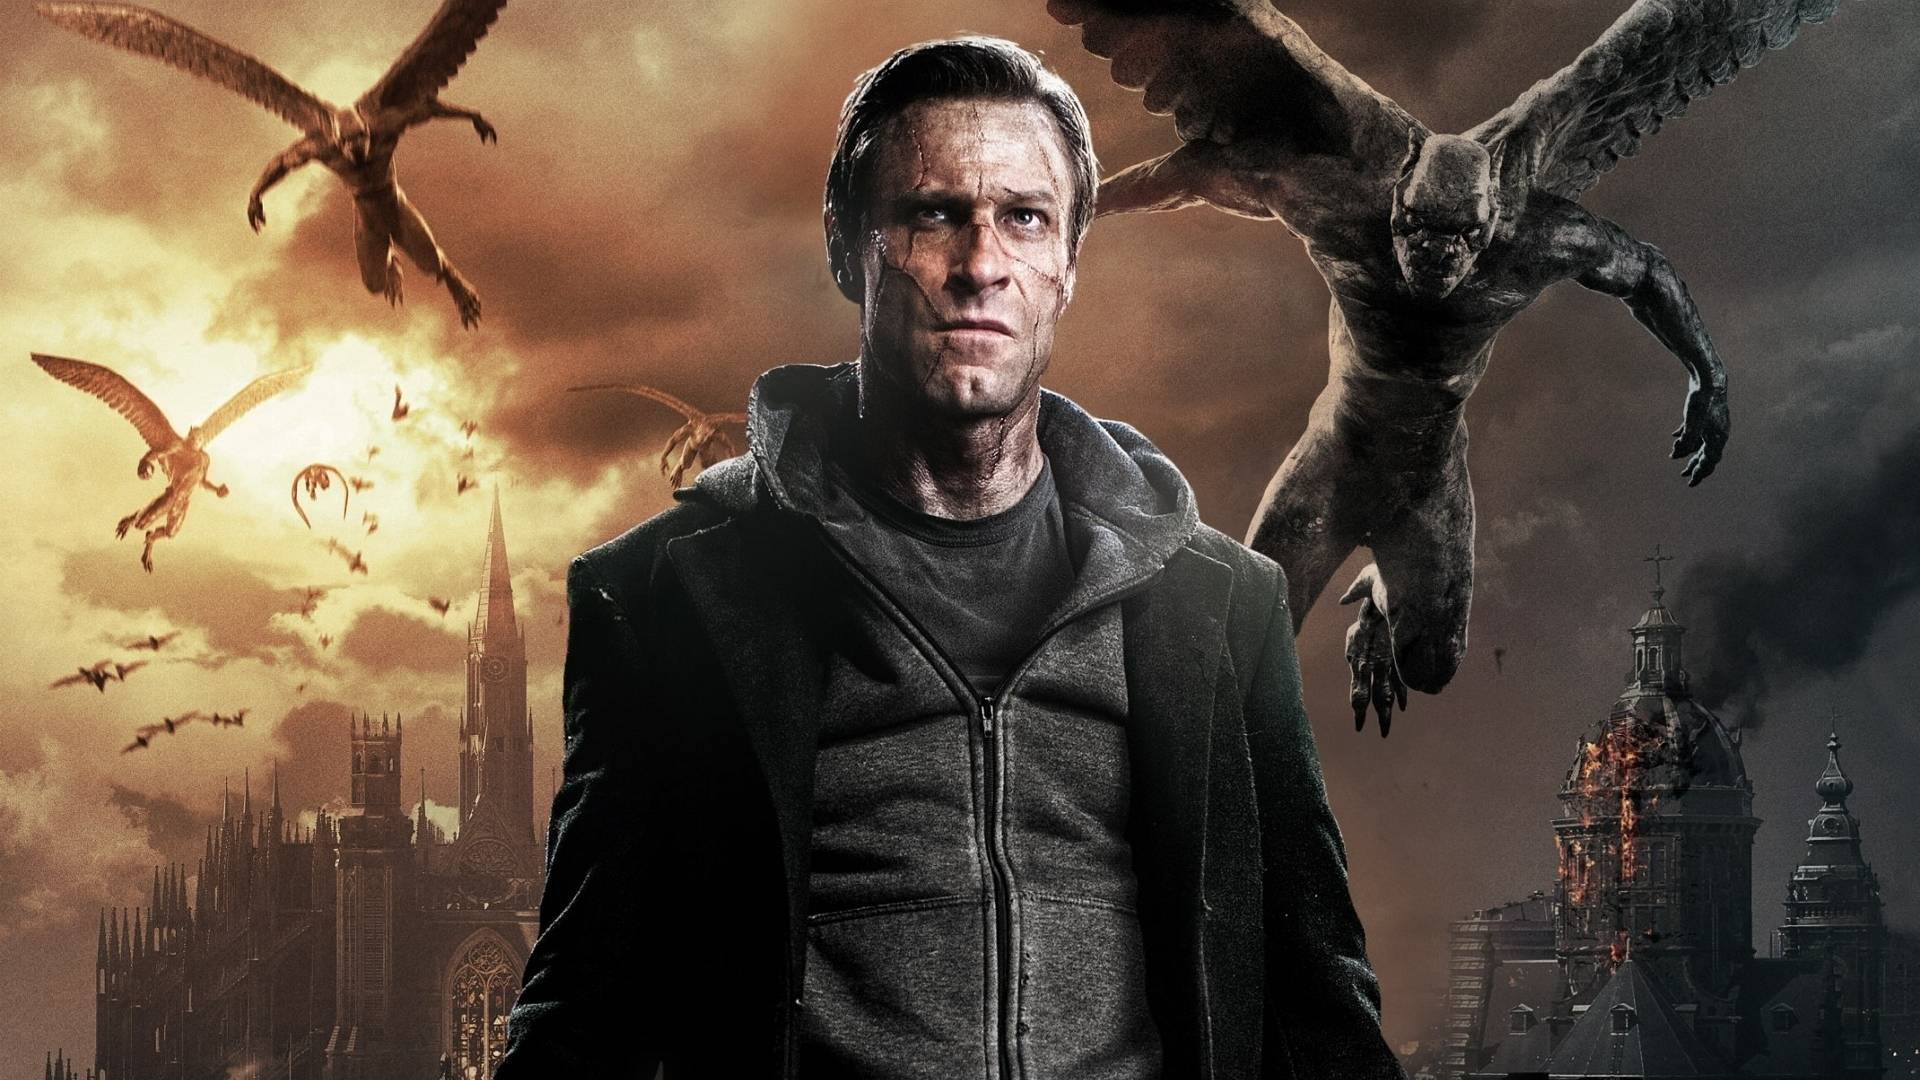 I Frankenstein Movie Wallpaper 2 Background Pennyworth Reviews